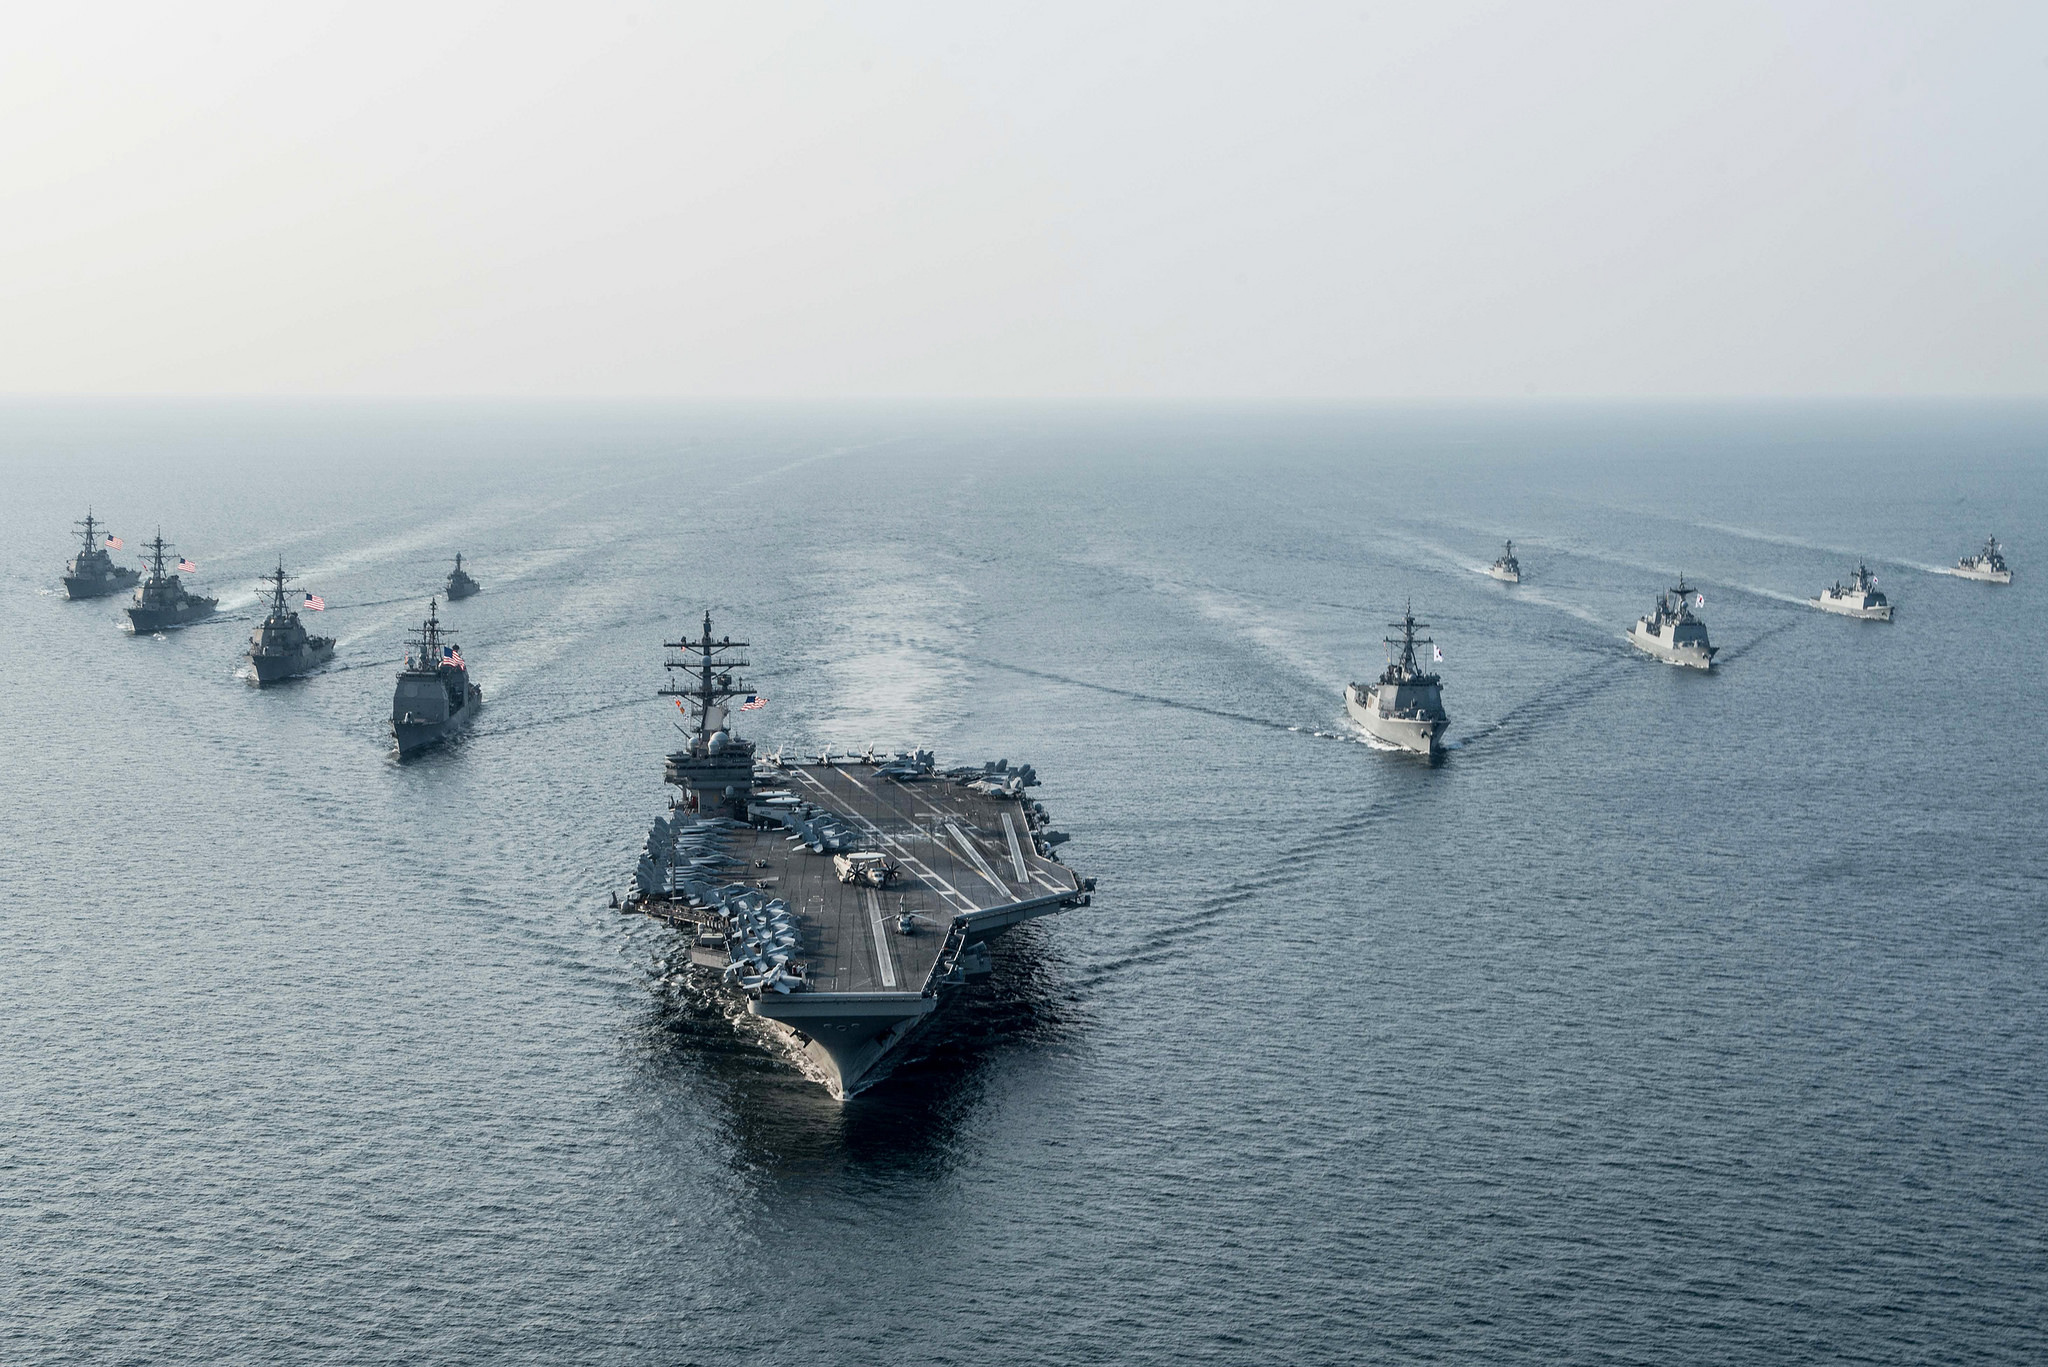 The Yokosuka, Kanagawa Prefecture-based USS Ronald Reagan steams in formation with ships from the U.S. Navy's Carrier Strike Group Five and the Republic of Korea's Navy during the Invincible Spirit drills in waters off the Korean Peninsula on Friday. | U.S. NAVY